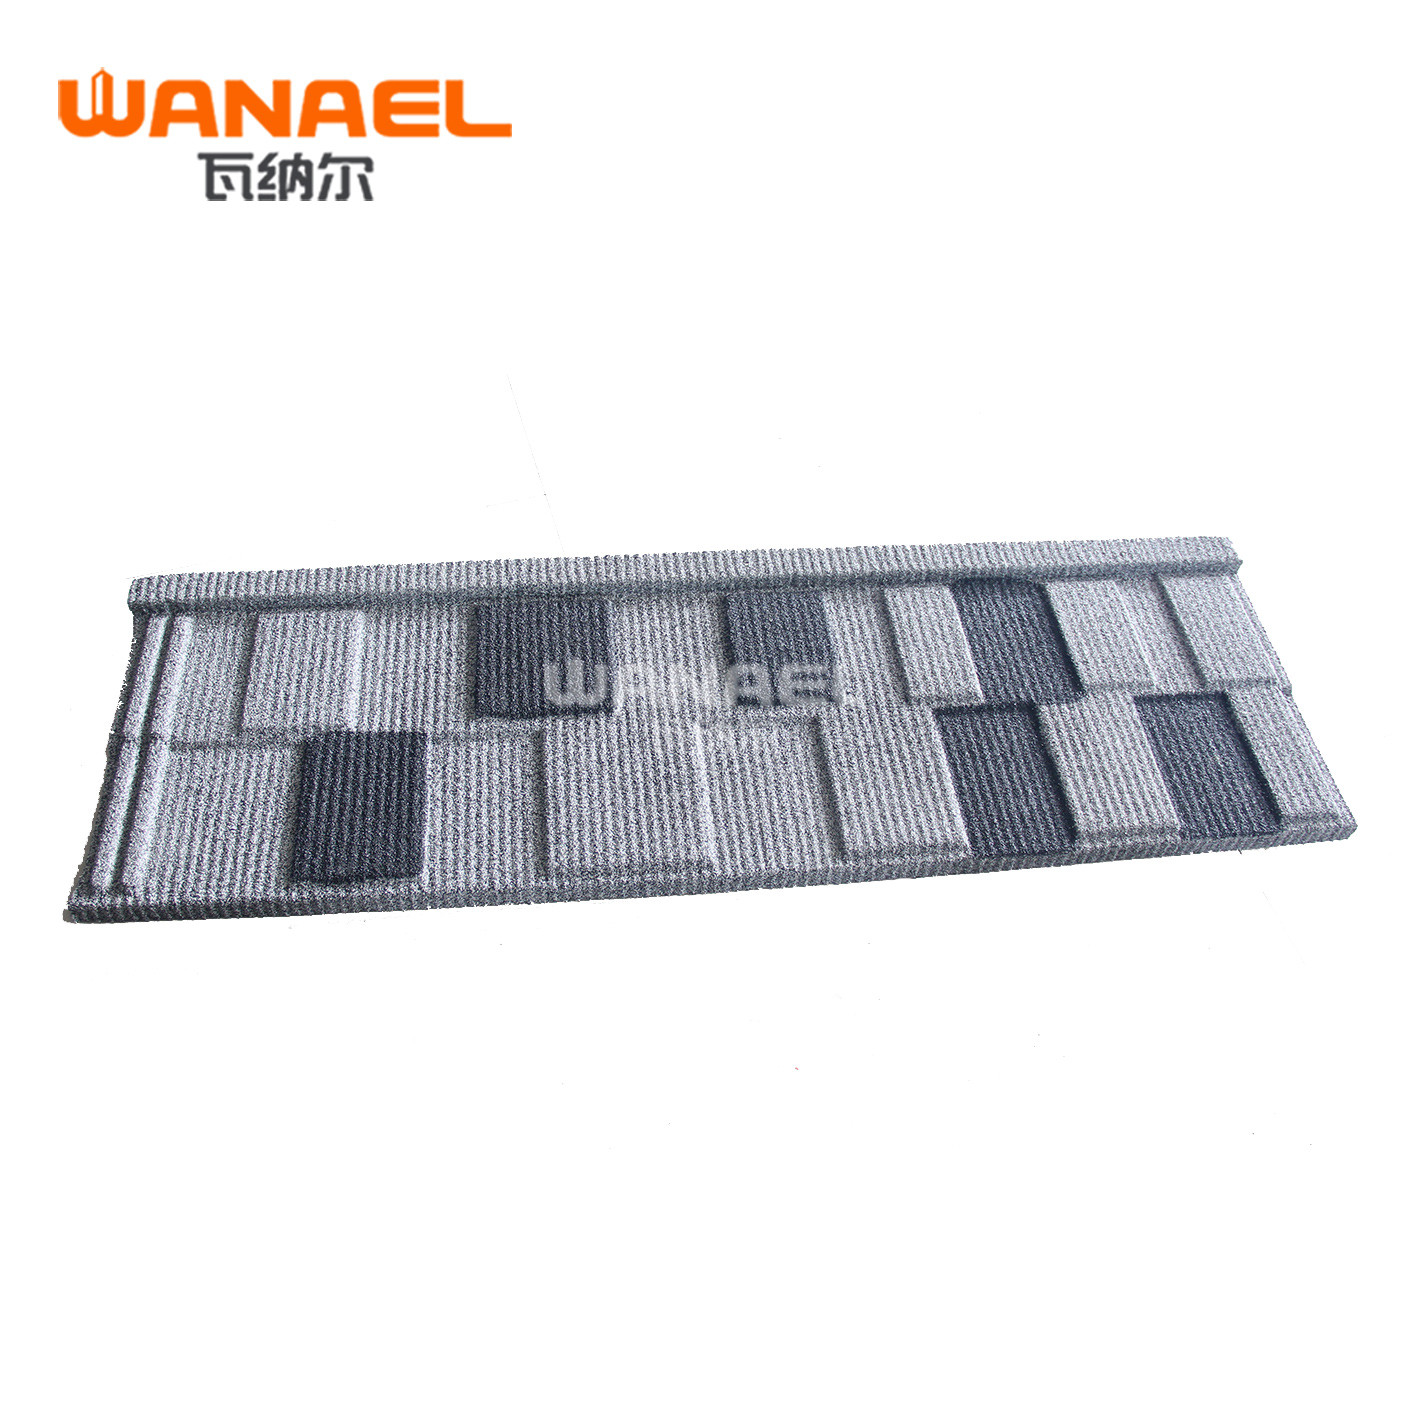 Roofing Sheets Prices In Ghana Economic Stone Chips Coated Steel Roof Panel Superior Substitute Of Asphalt Roof Shingle Tiles Buy Asphalt Roof Shingle Tiles Stone Chips Coated Steel Roof Product On Alibaba Com